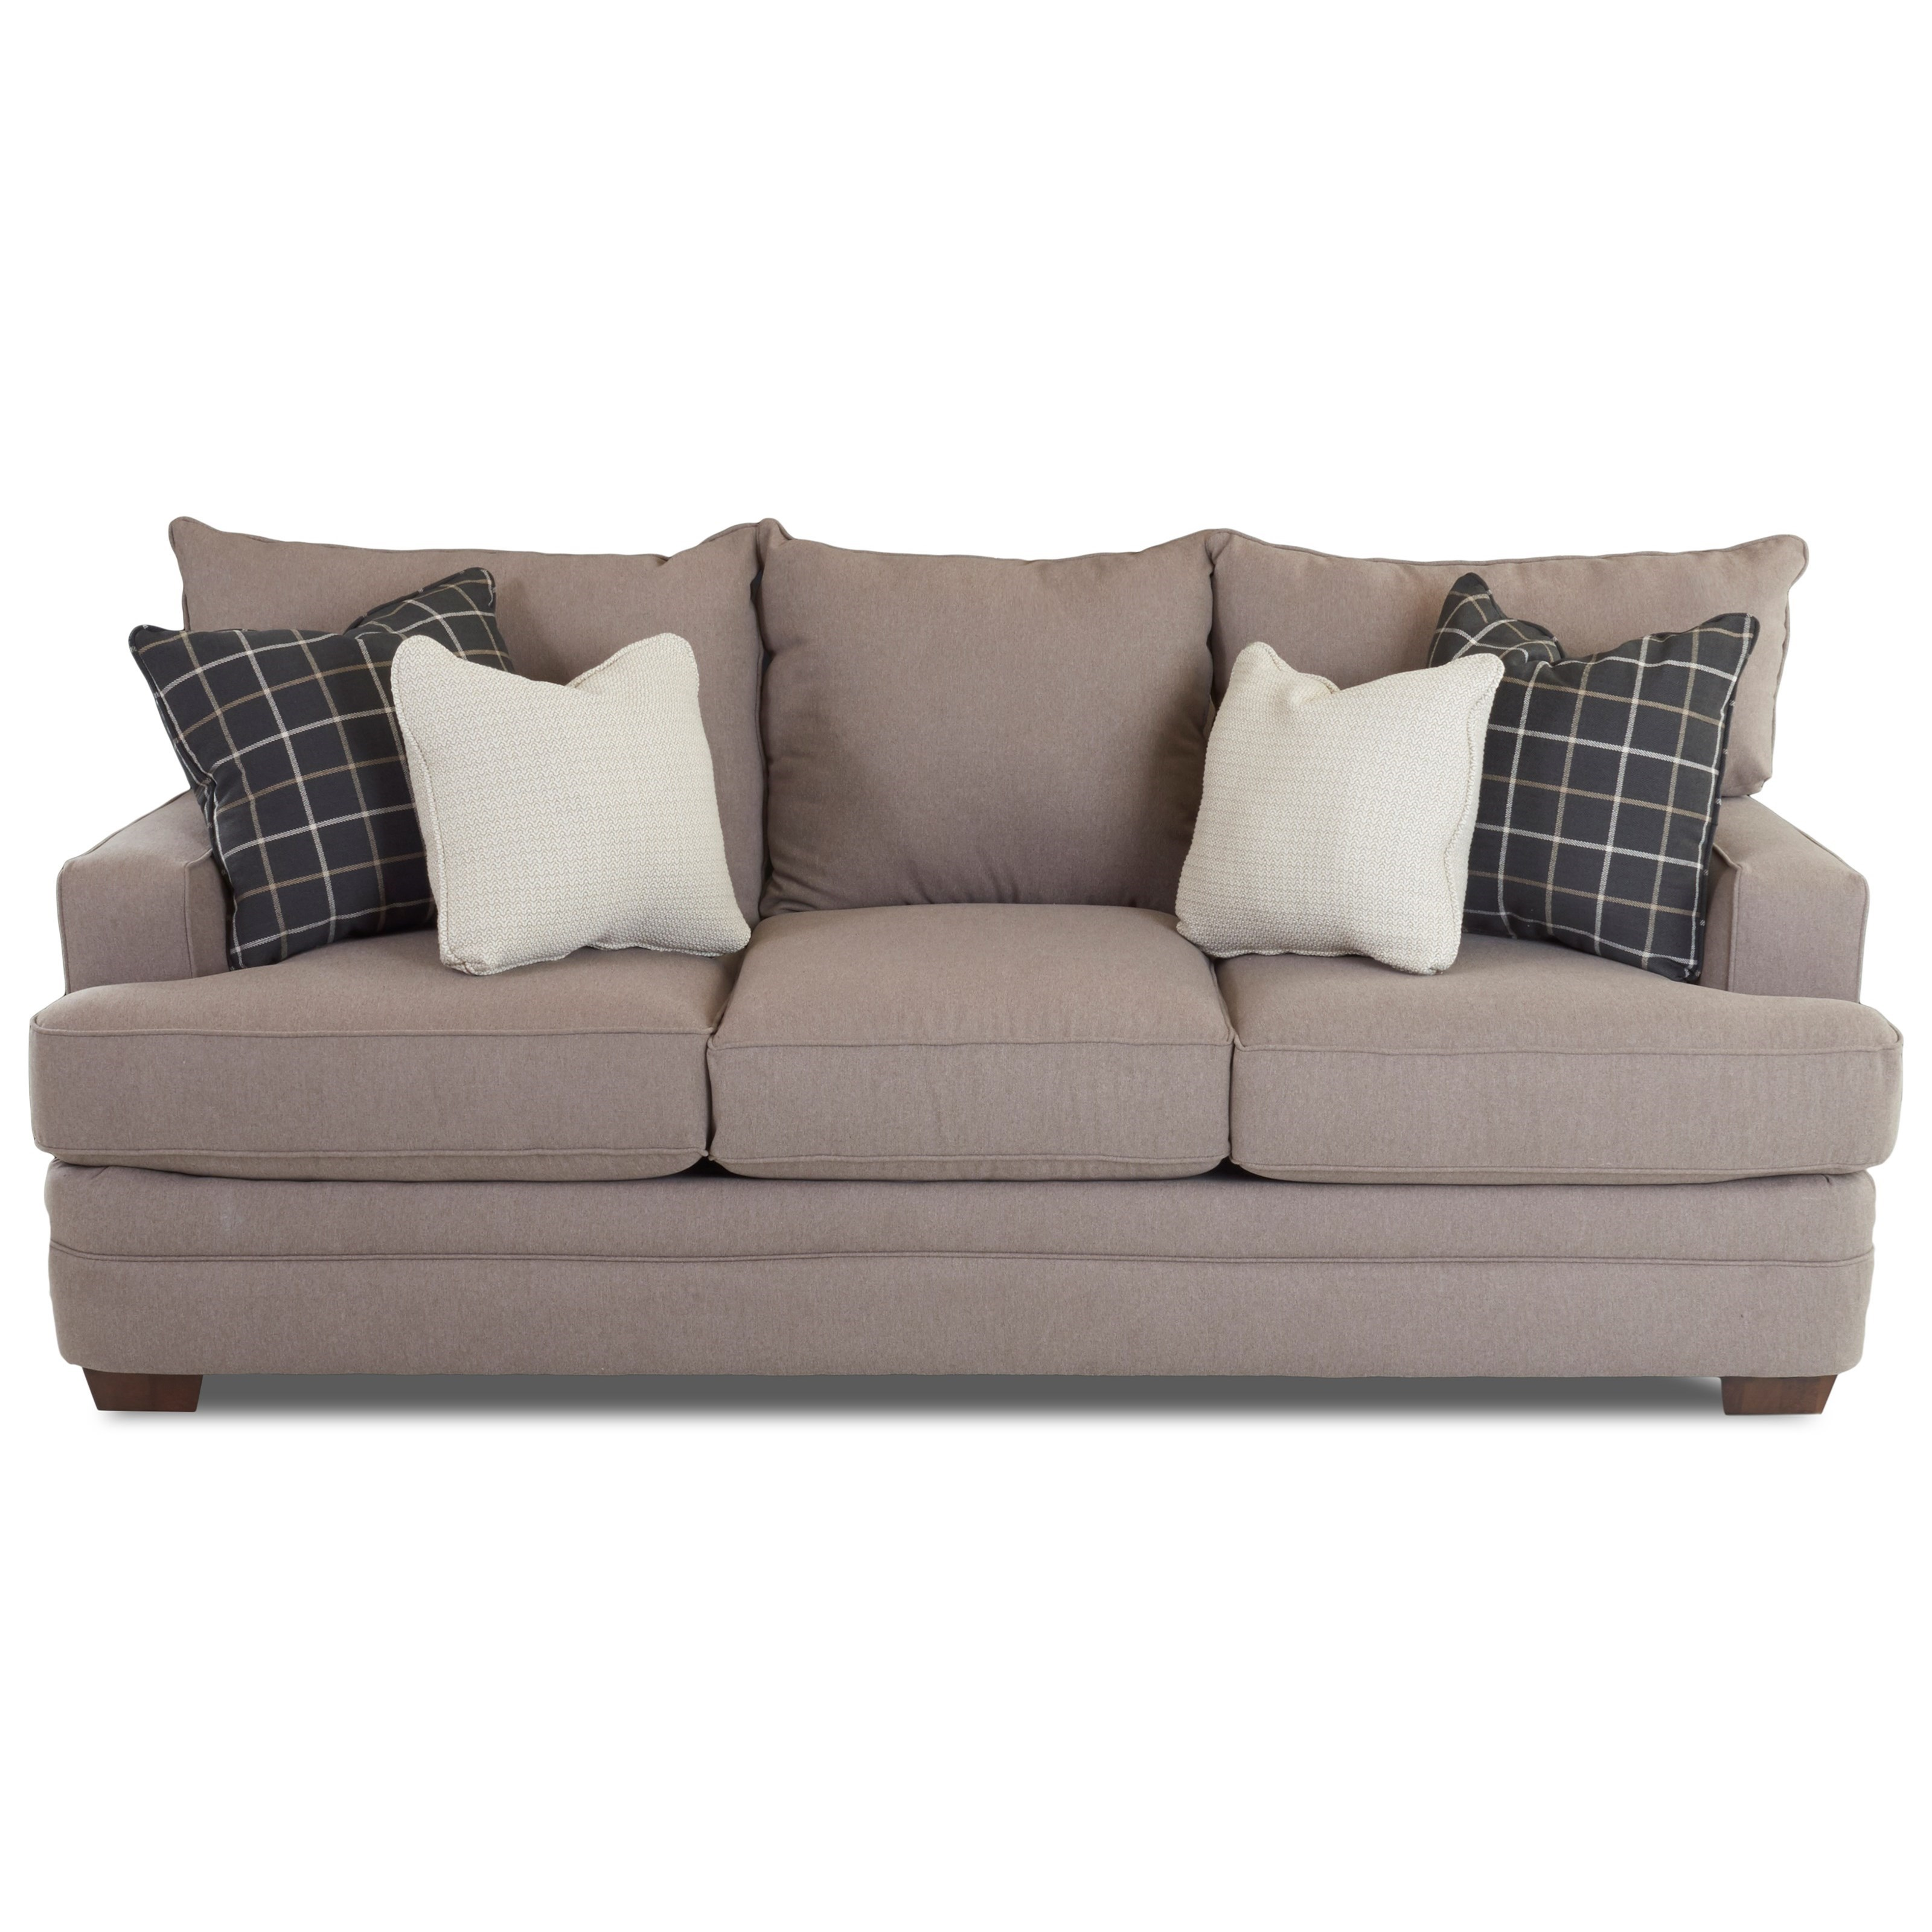 Chadwick Chadwick Sofa by Klaussner at Northeast Factory Direct